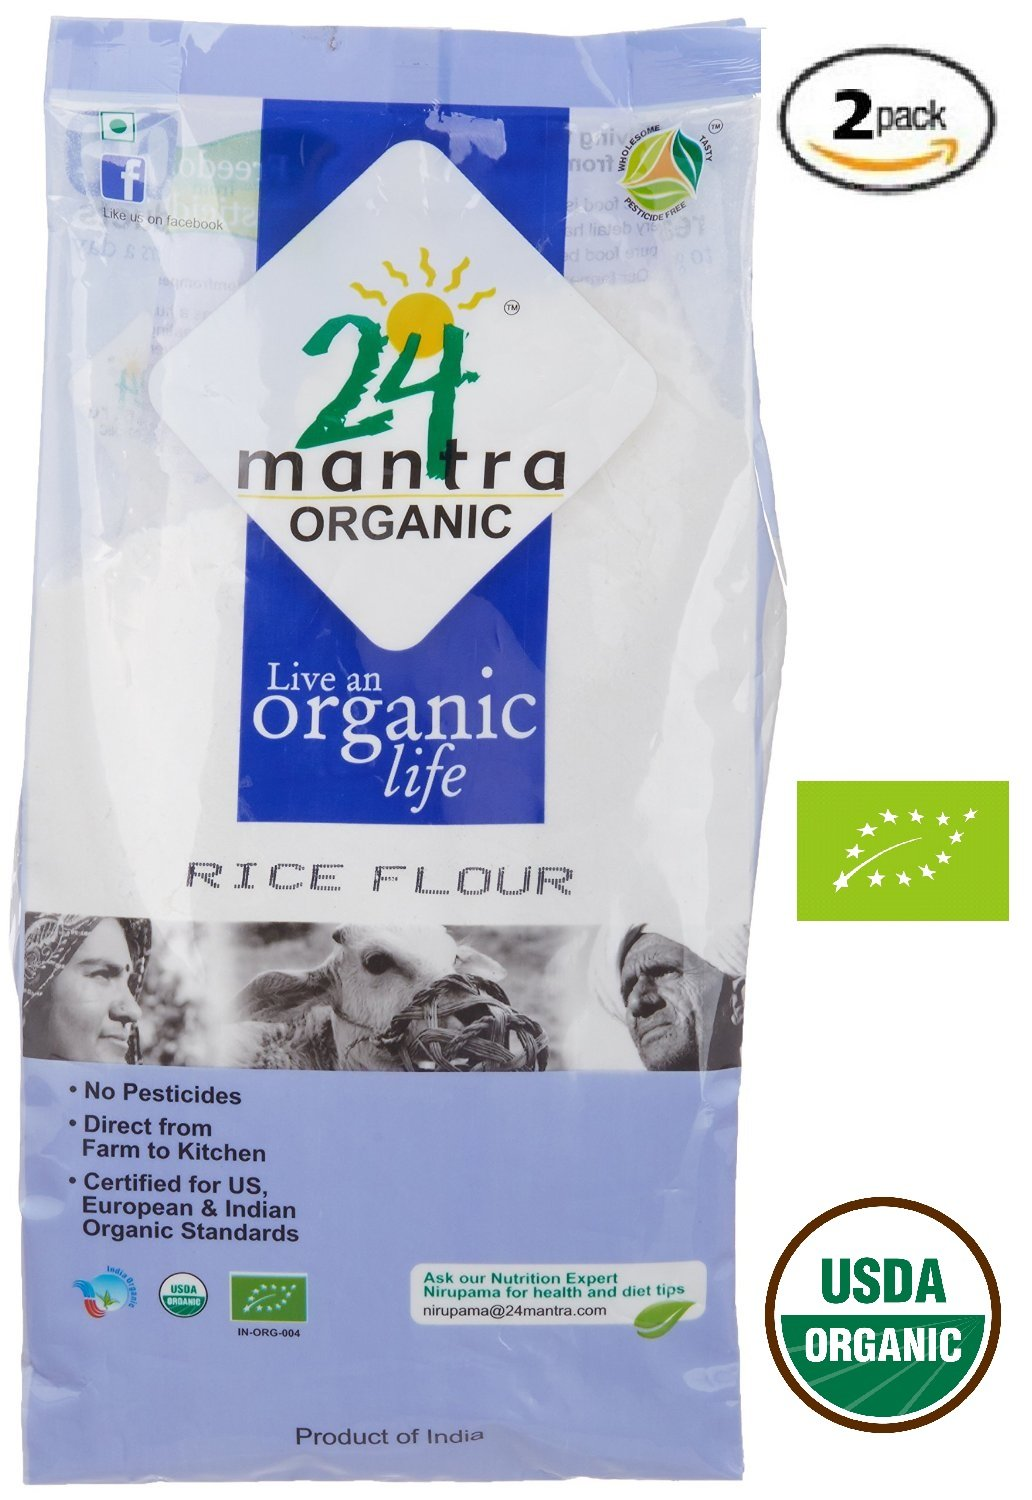 Organic Coriander Powder - Coriander Seeds Powder - ★ USDA Certified Organic - ★ European Union Certified Organic - ★ Pesticides Free - ★ Adulteration Free - ★ Sodium Free - Pack of 2 X 7 Ounces(14 Ounces) - 24 Mantra Organic by 24 MANTRA (Image #7)